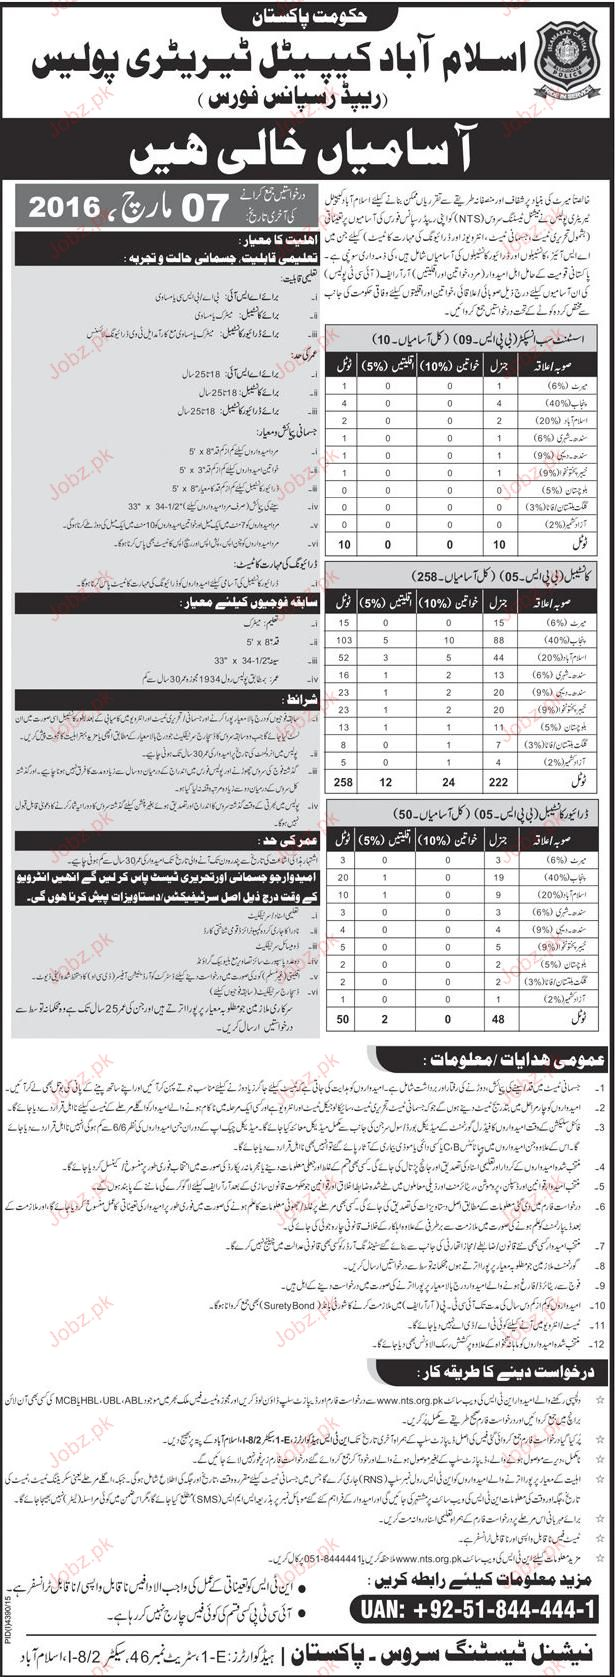 Recruitment of Constables in Islamabad Police